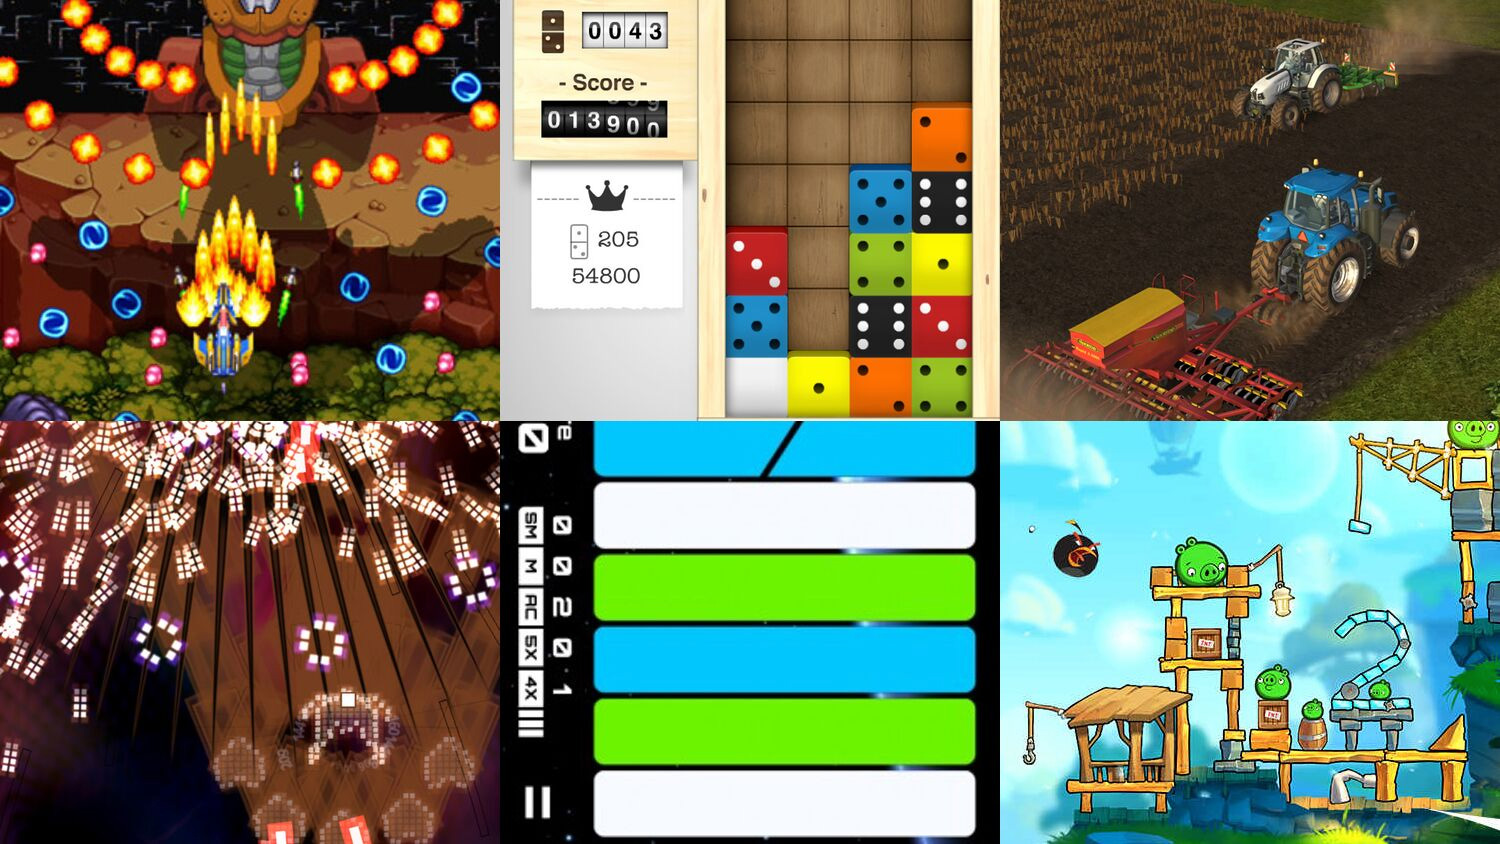 Games Now! The best iPhone and iPad games for Friday, August 7th - VG247Games Now! The best iPhone and iPad games for Friday, August 7th - 웹